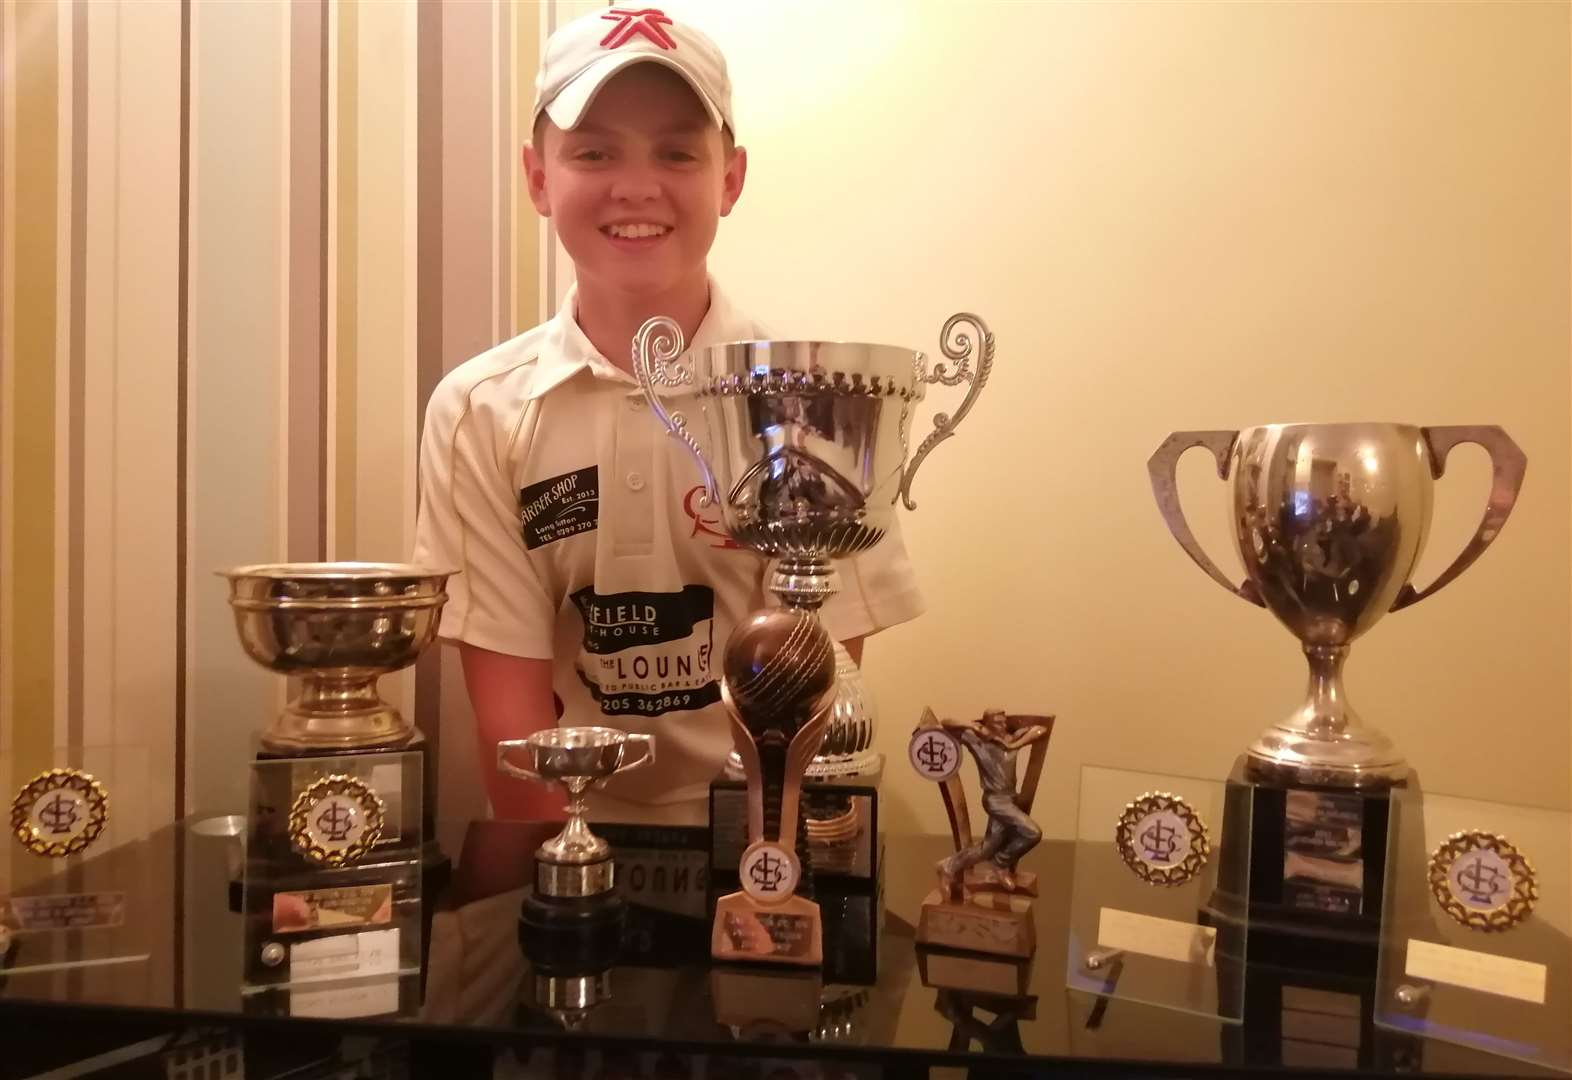 CRICKET: Charlie collects series of awards